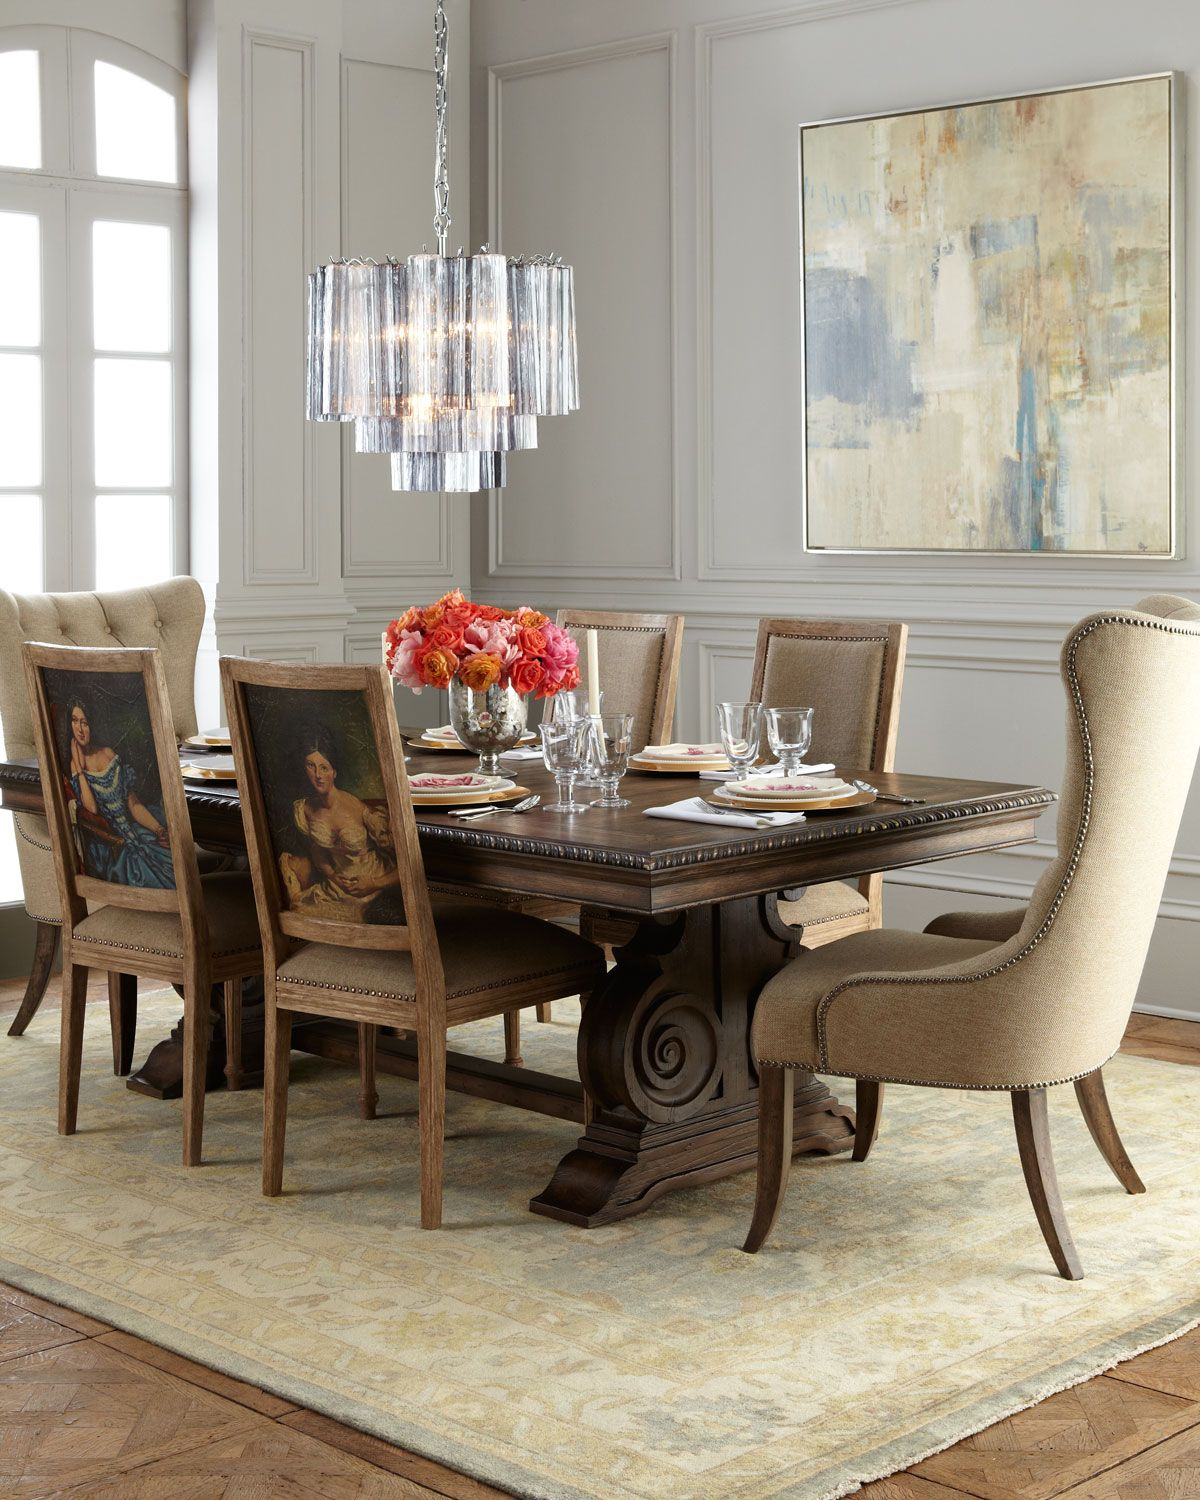 Donabella Dining Table Donabella Tufted Chairs u0026